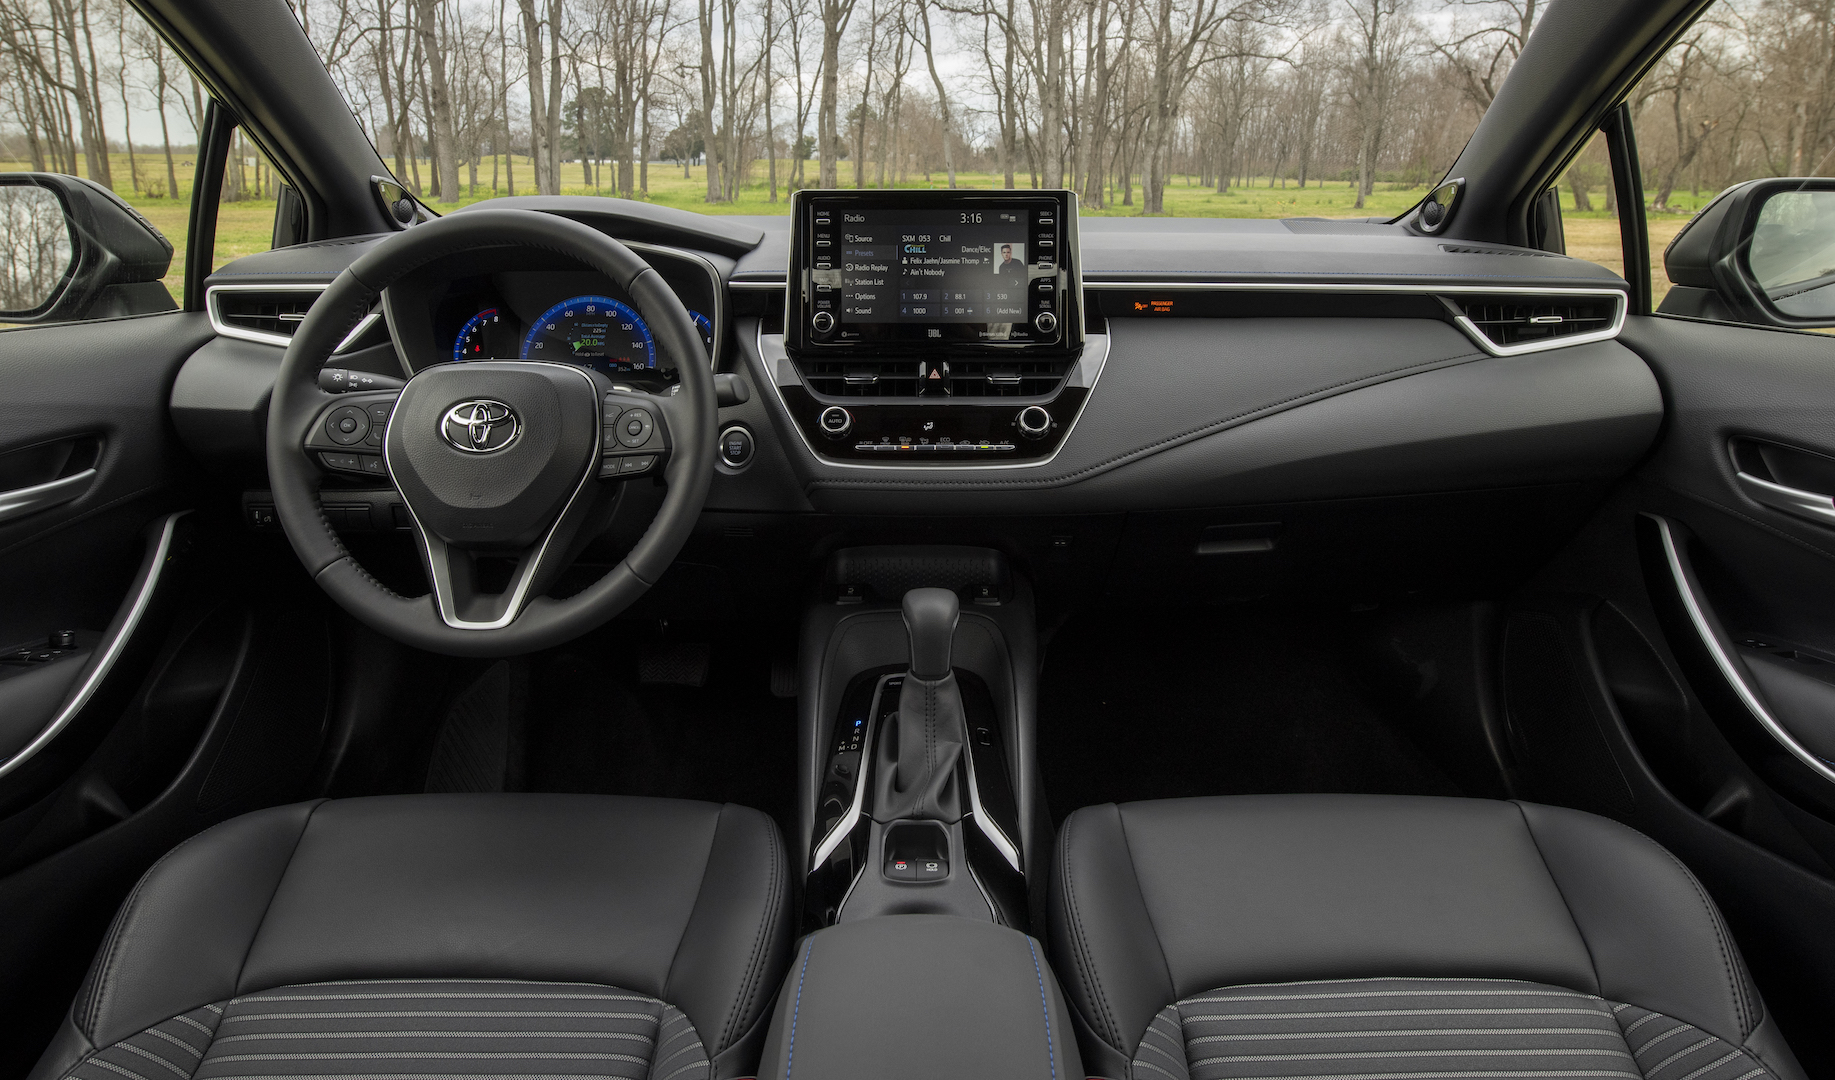 2020_Corolla_XSE_BlackSandPearl_049_v1_current